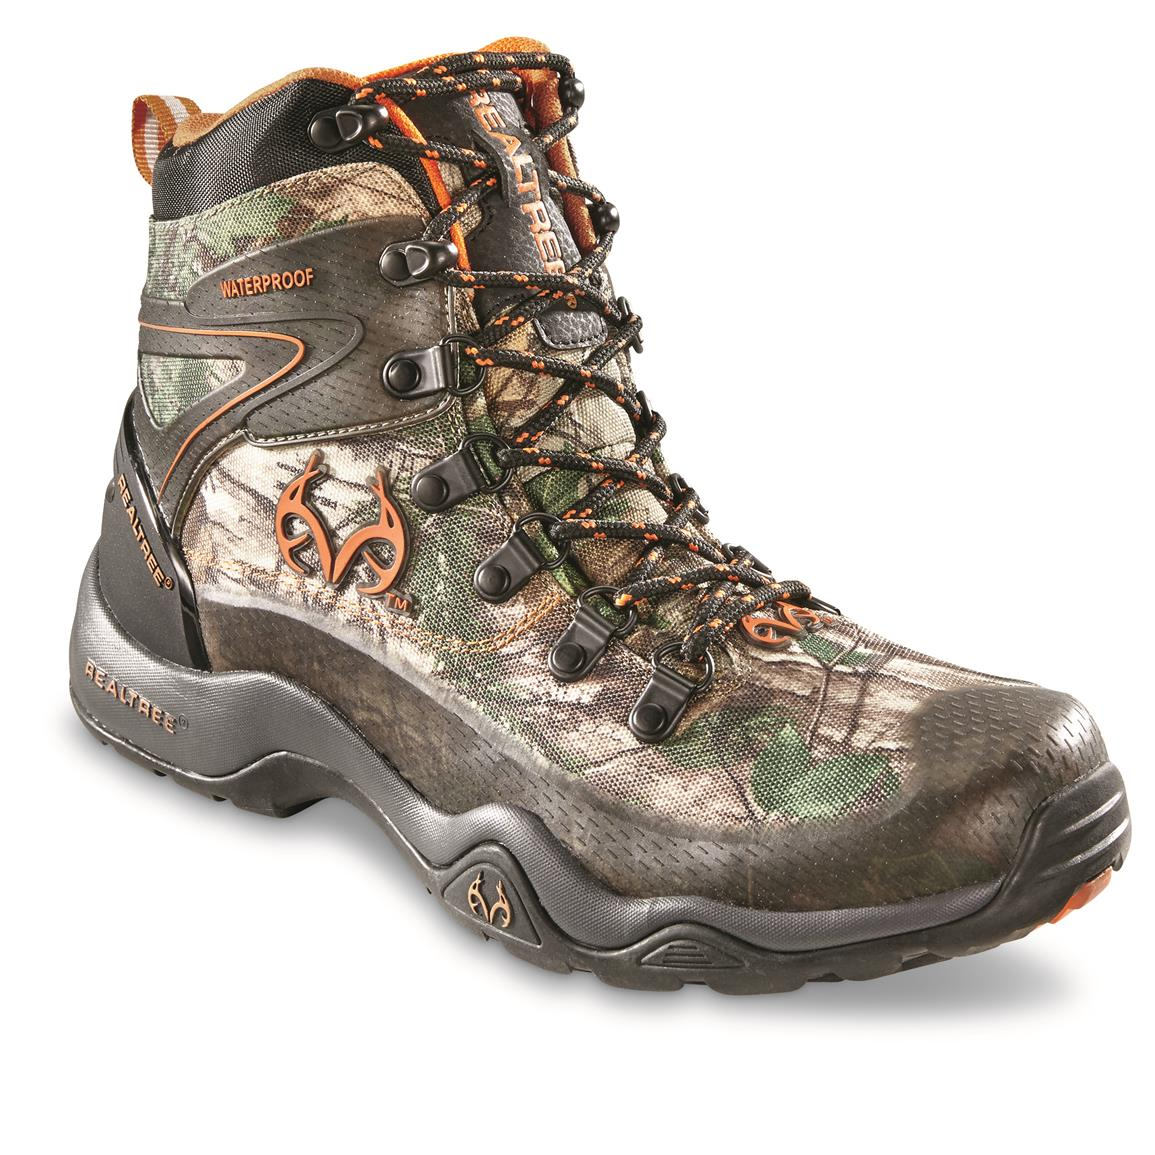 Realtree Men's Outfitters Ridge Waterproof Hunting Boots, Black/Realtree Xtra